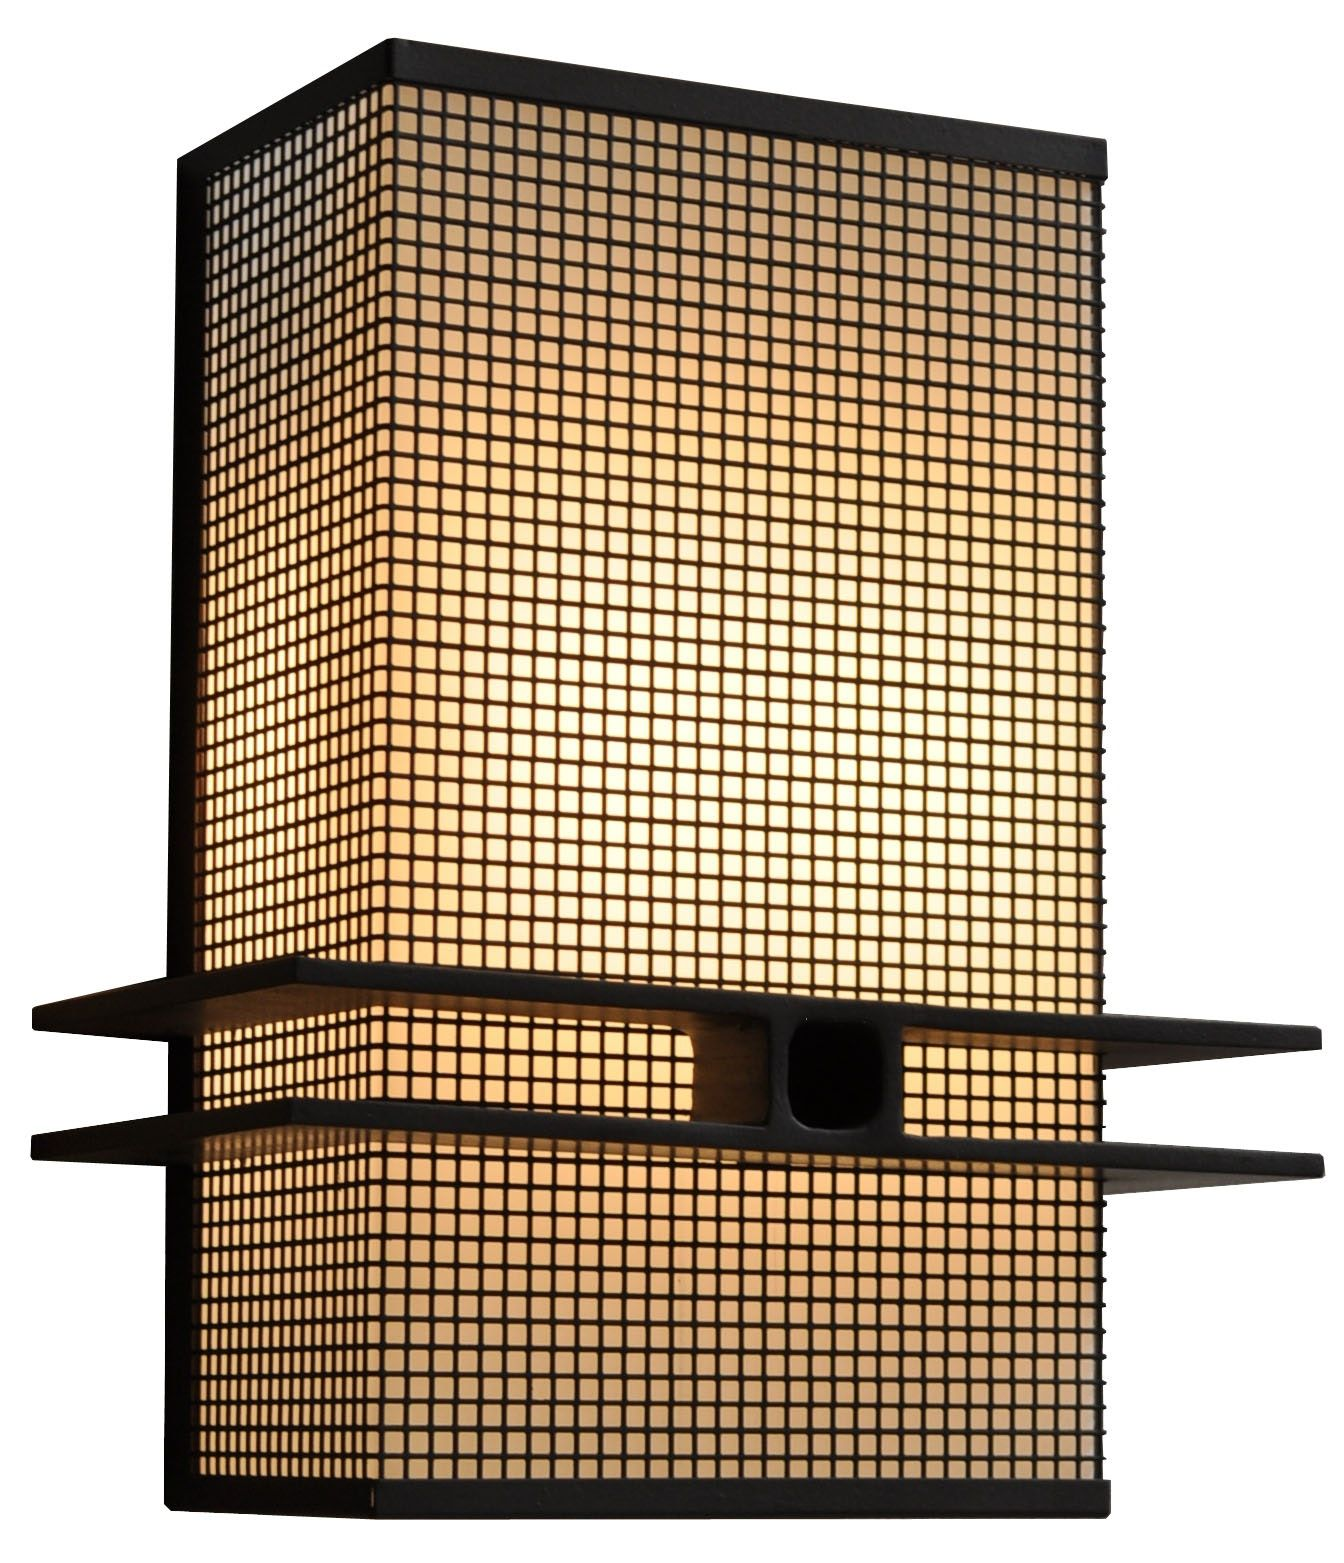 Square Mesh Wall Sconce by ADG Lighting in 2019 Modern